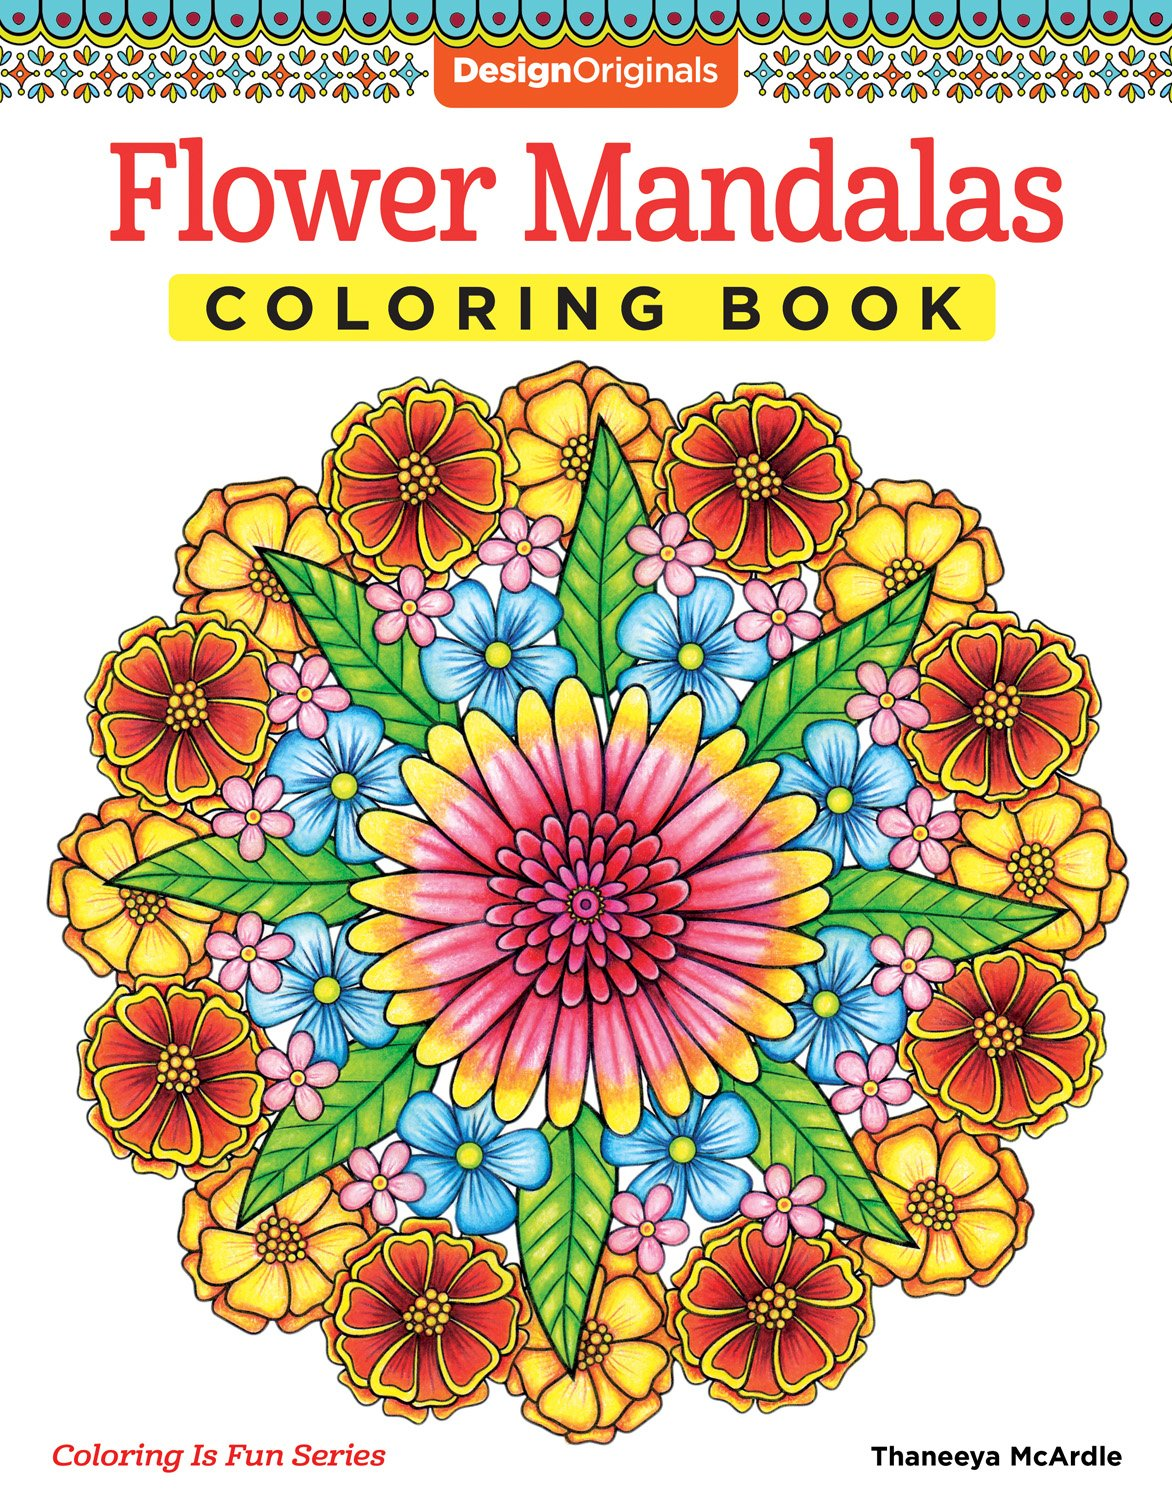 Flower Mandalas Coloring Book (Coloring Is Fun) (Design Originals)